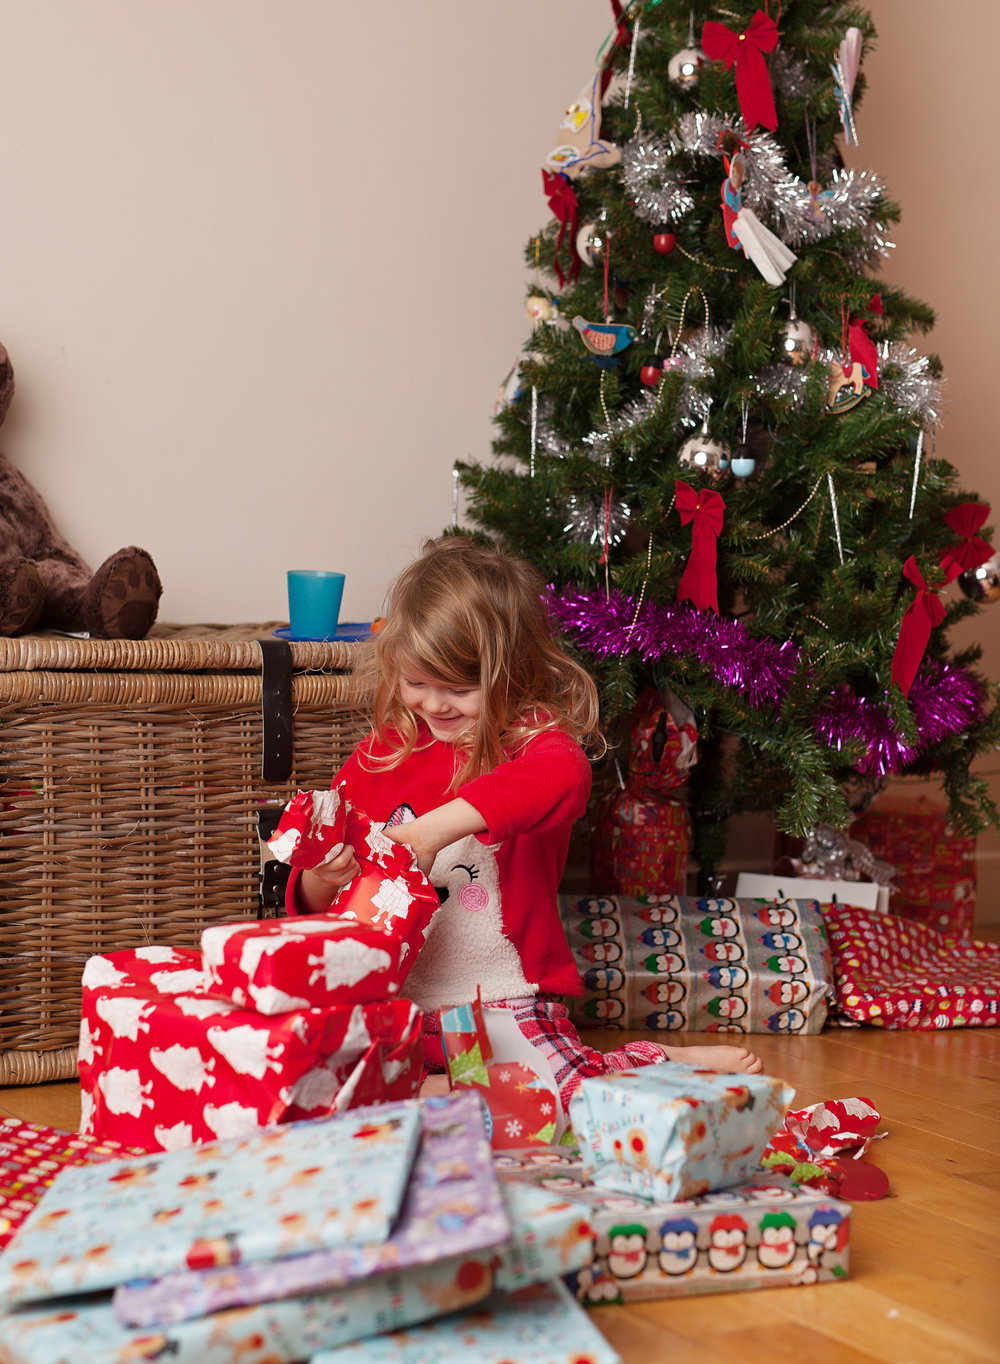 My Top 5 Baby S First Christmas Toys Lucie Woods Photography